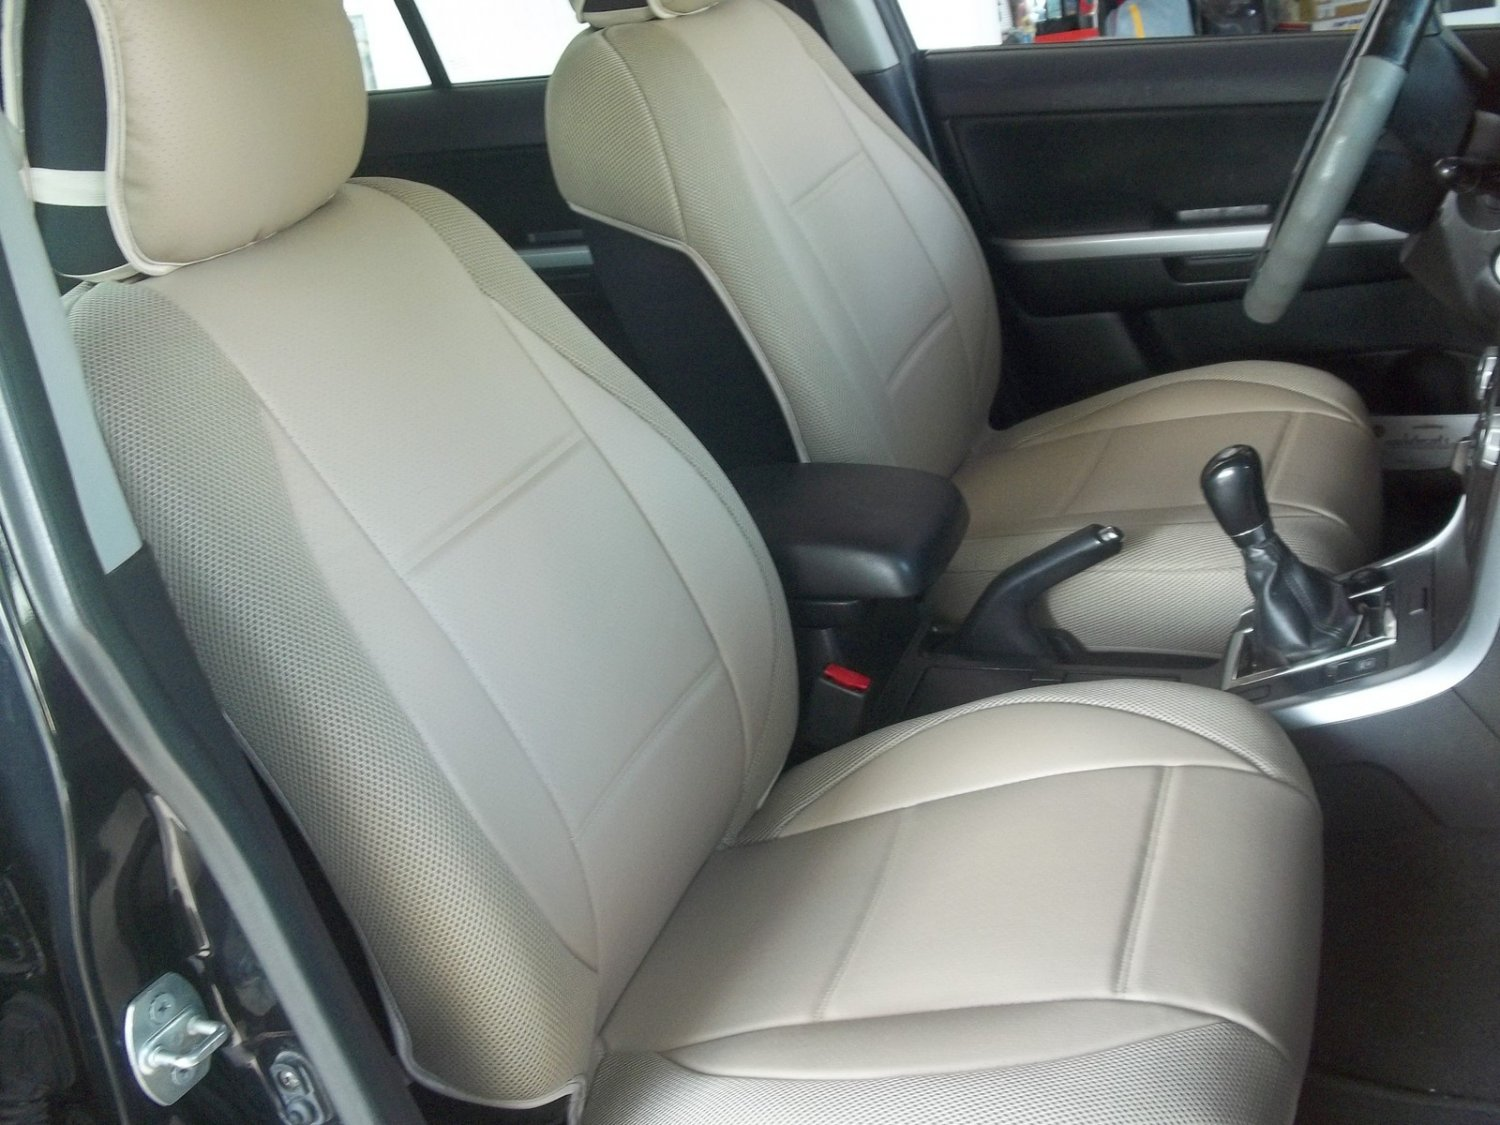 MIX LEATHERETTE & SYNTHETIC TWO FRONT BEIGE (TAN) CAR SEAT COVERS (Fits SUBARU IMPREZA 2012-..... )